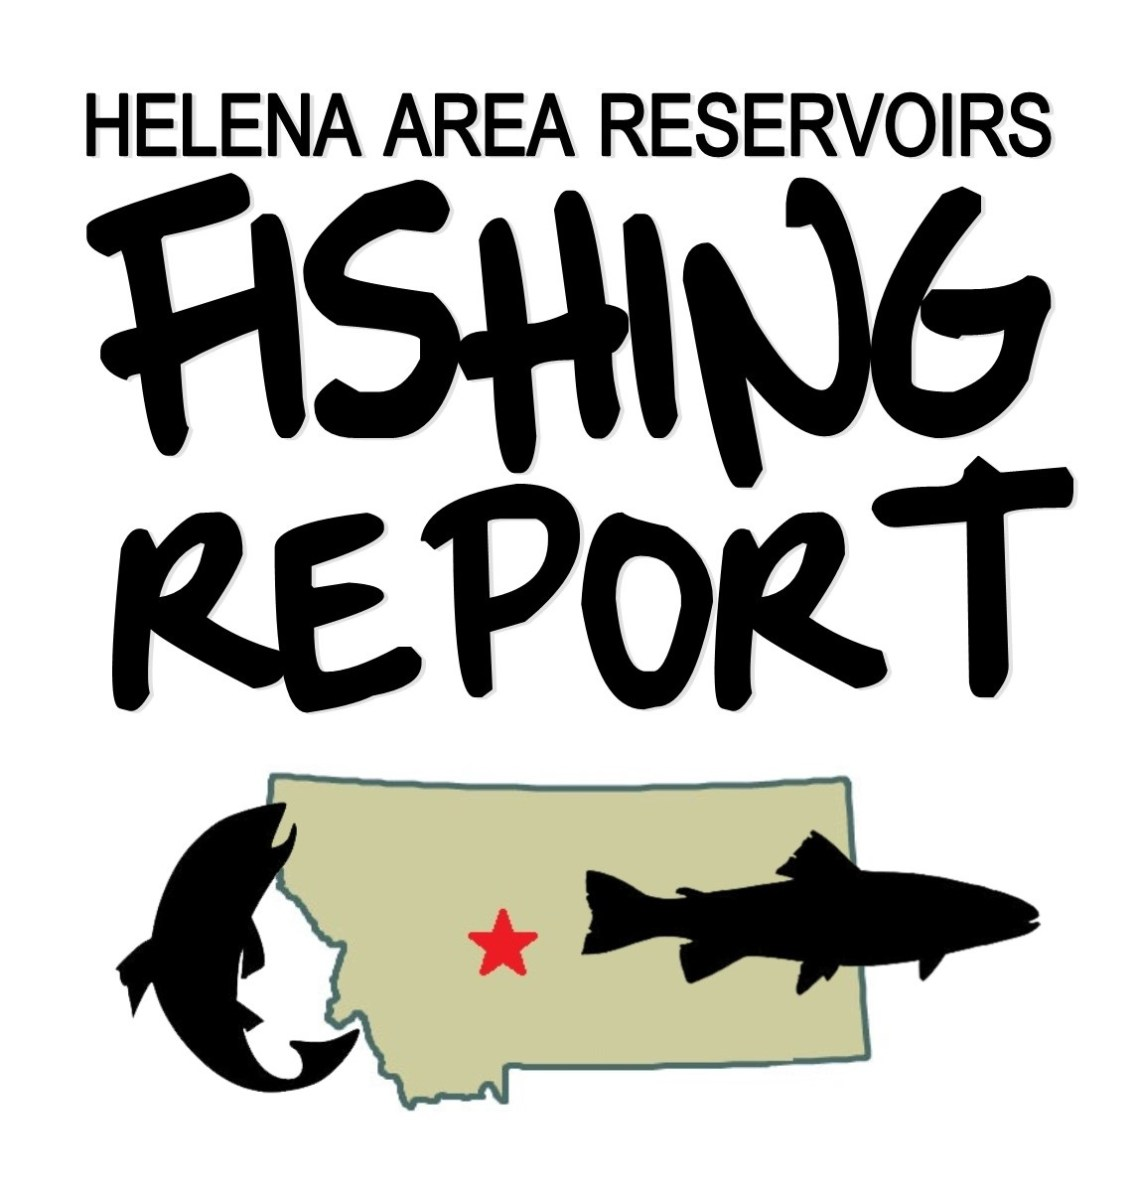 Helena Area Reservoirs Fishing Report for the Week of 7.21.14